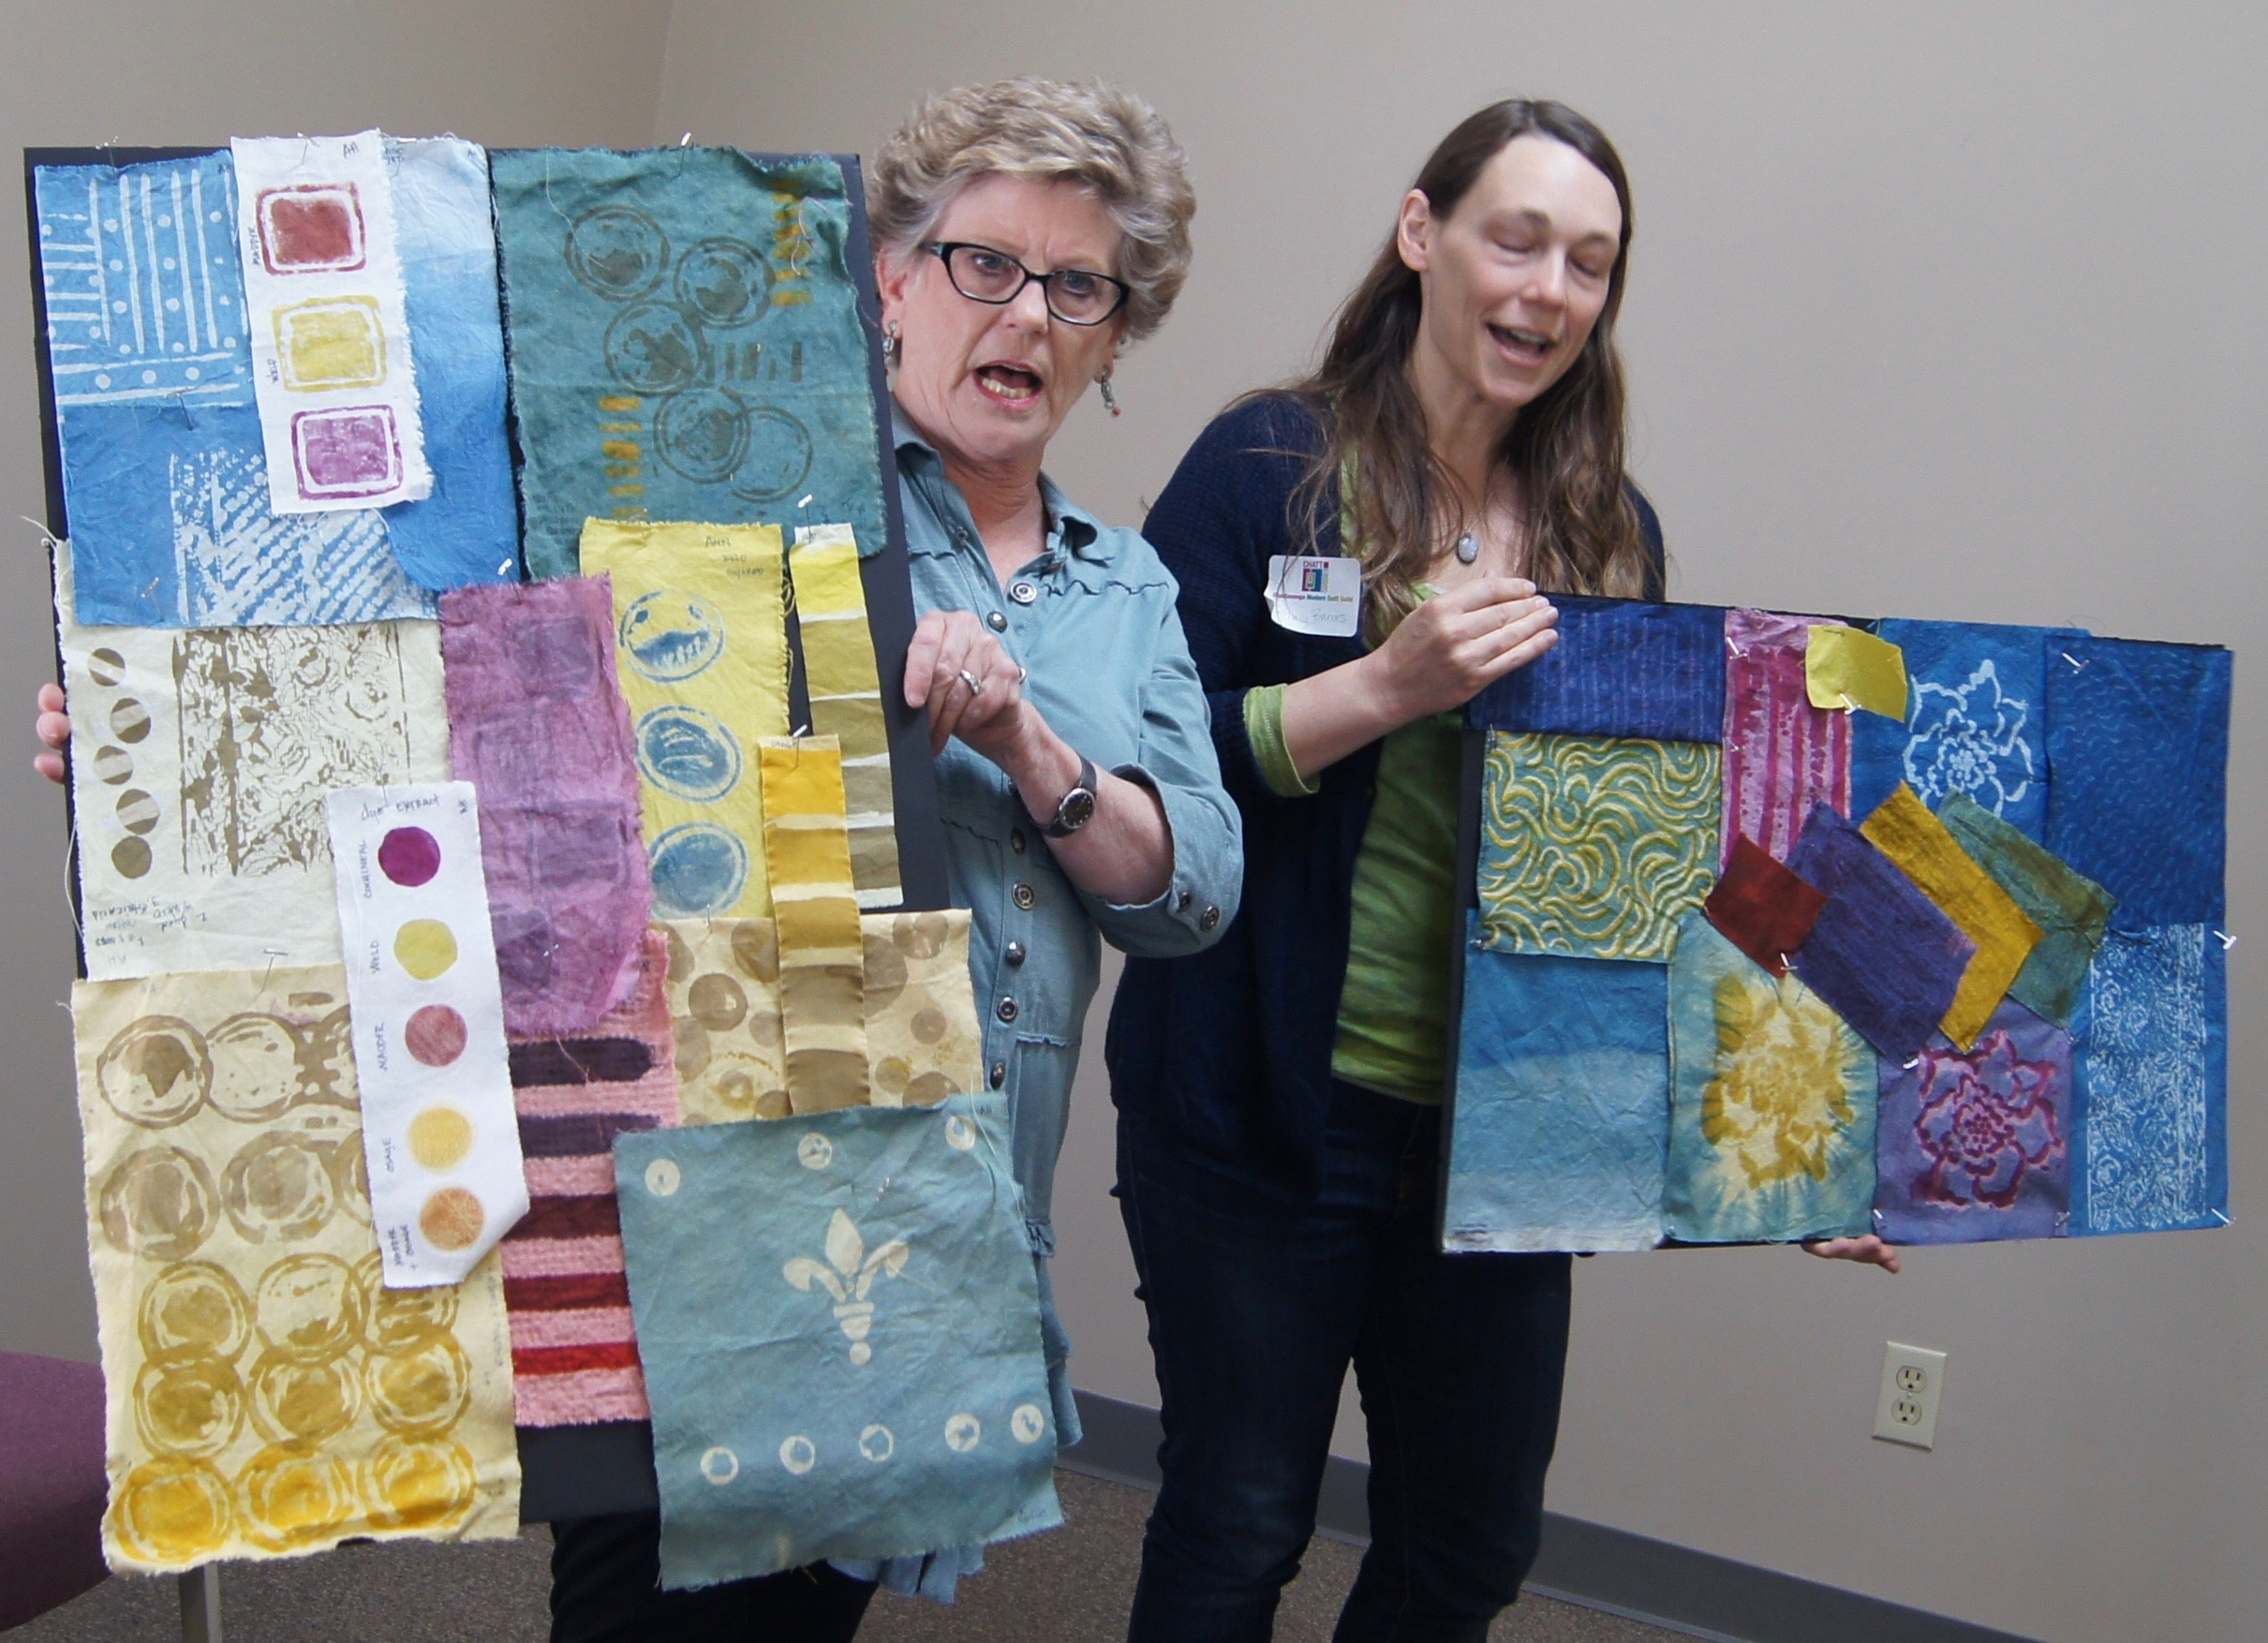 Hand-dyed fabric made by Ann (left) and Bethany Barnes (right) in a workshop